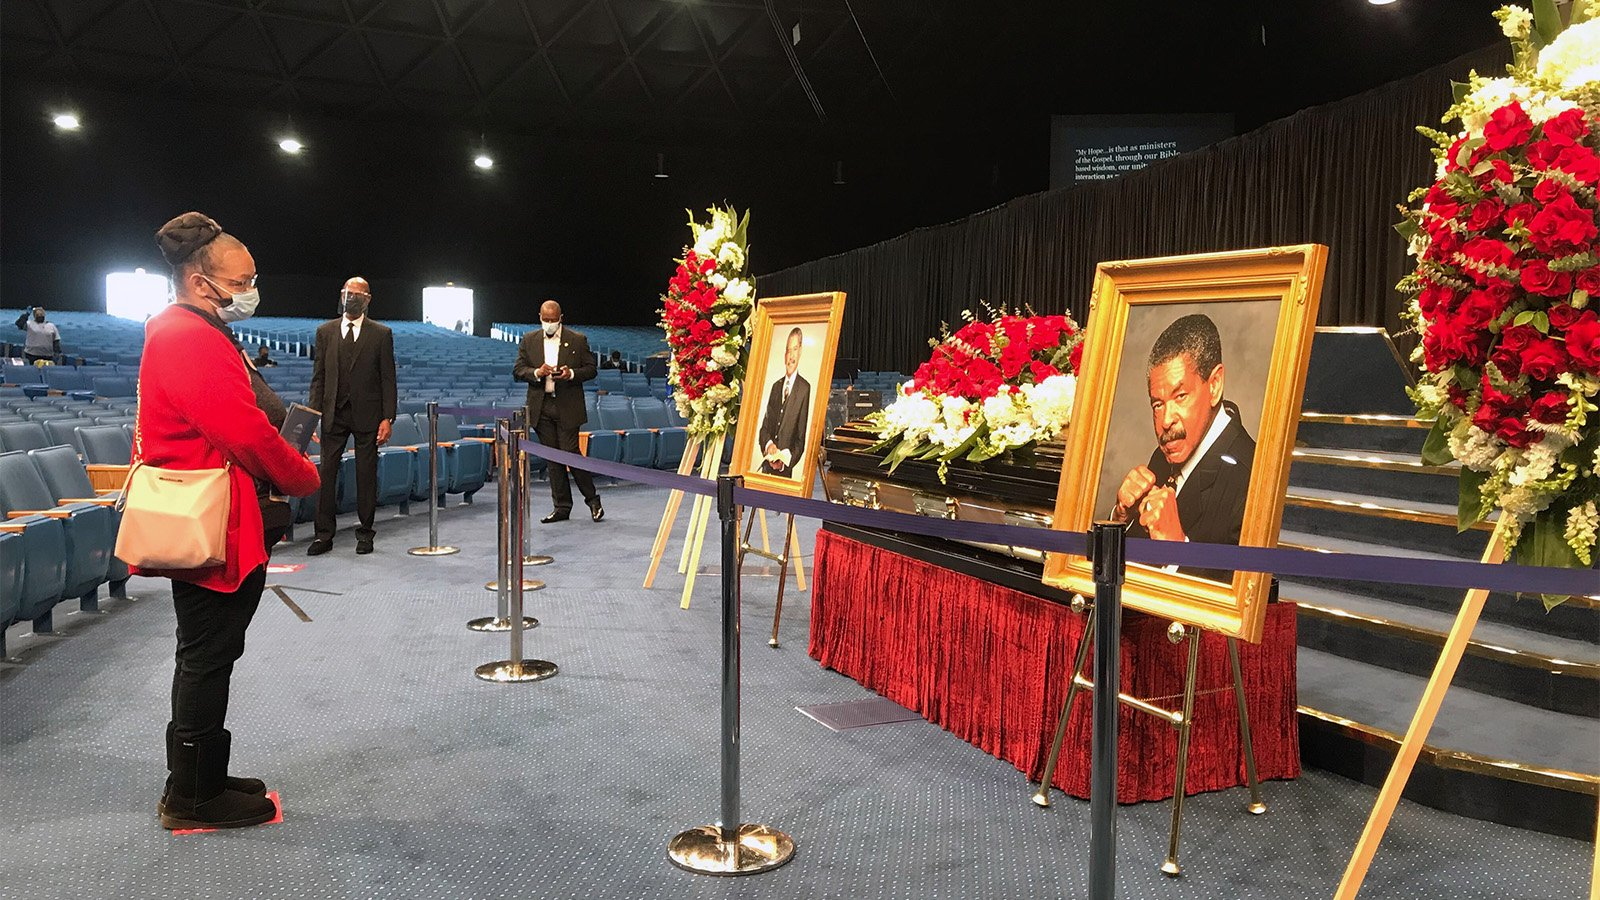 """Judy Venable, left, pays her respects to the late Rev. Frederick K.C. """"Fred"""" Price during a public viewing Thursday, March 4, 2021, at FaithDome in Los Angeles. RNS photo by Alejandra Molina"""